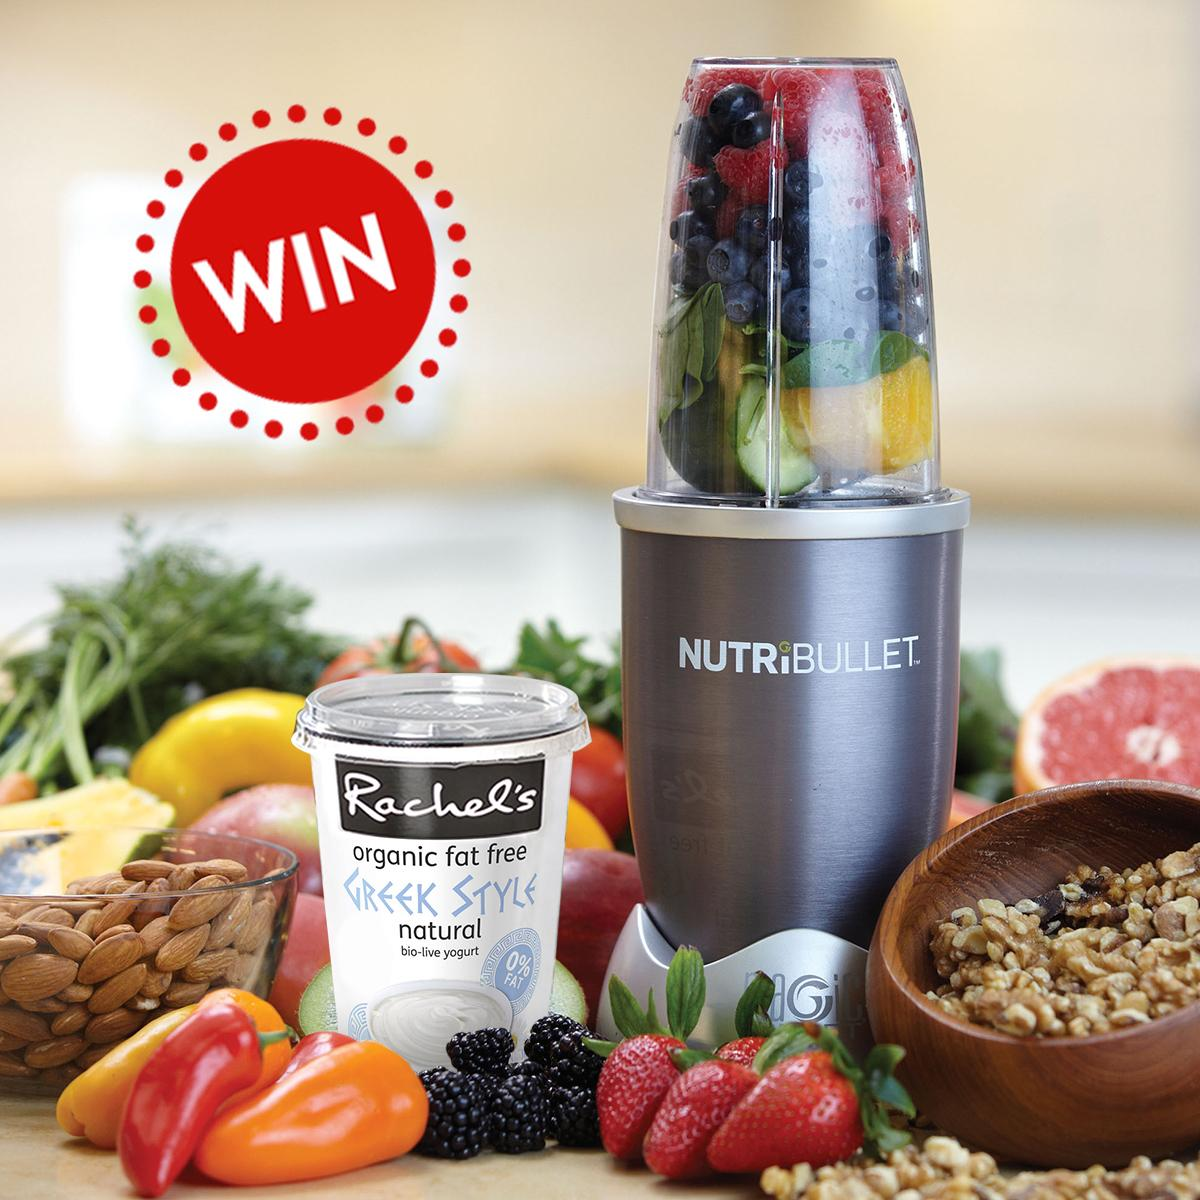 Want to win a @NutribulletUk? Snap a pic of your breakfast this morning using #BreakfastWeek! (T&Cs apply) http://t.co/NQqM09TGZB